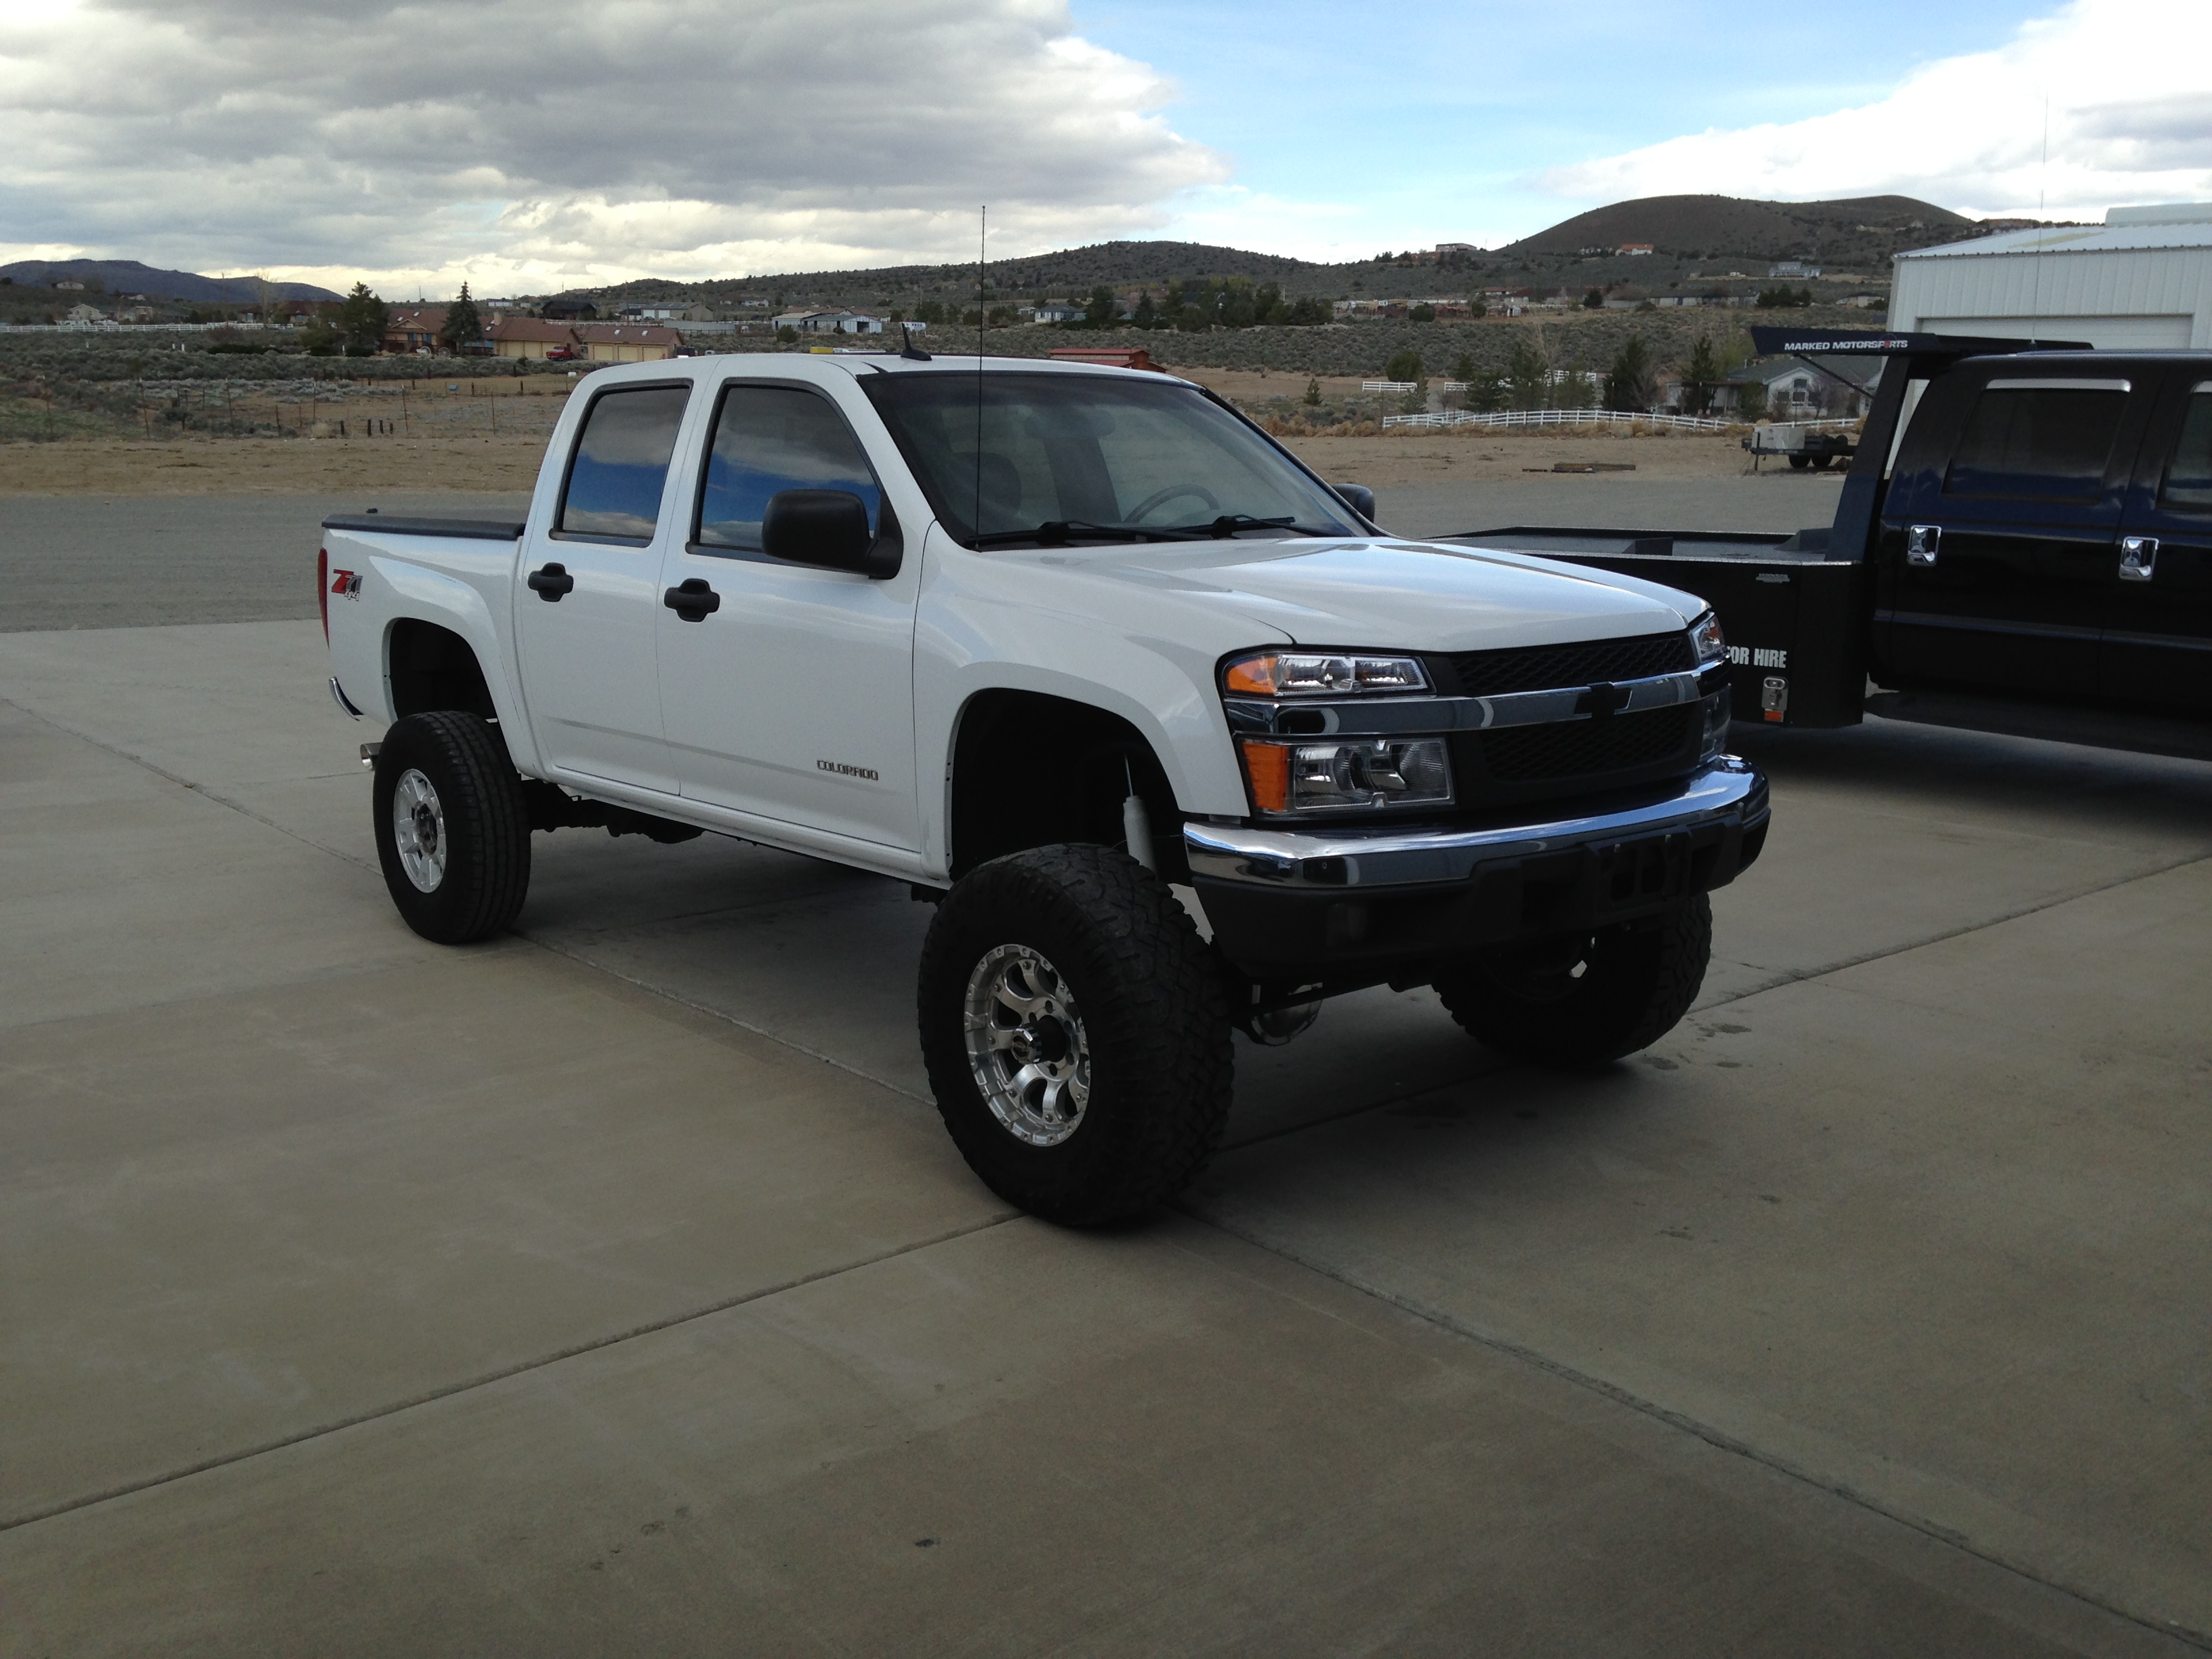 The Wife's 2005 Chevy Colorado Crew Cab Solid Axle Swap - It's Free